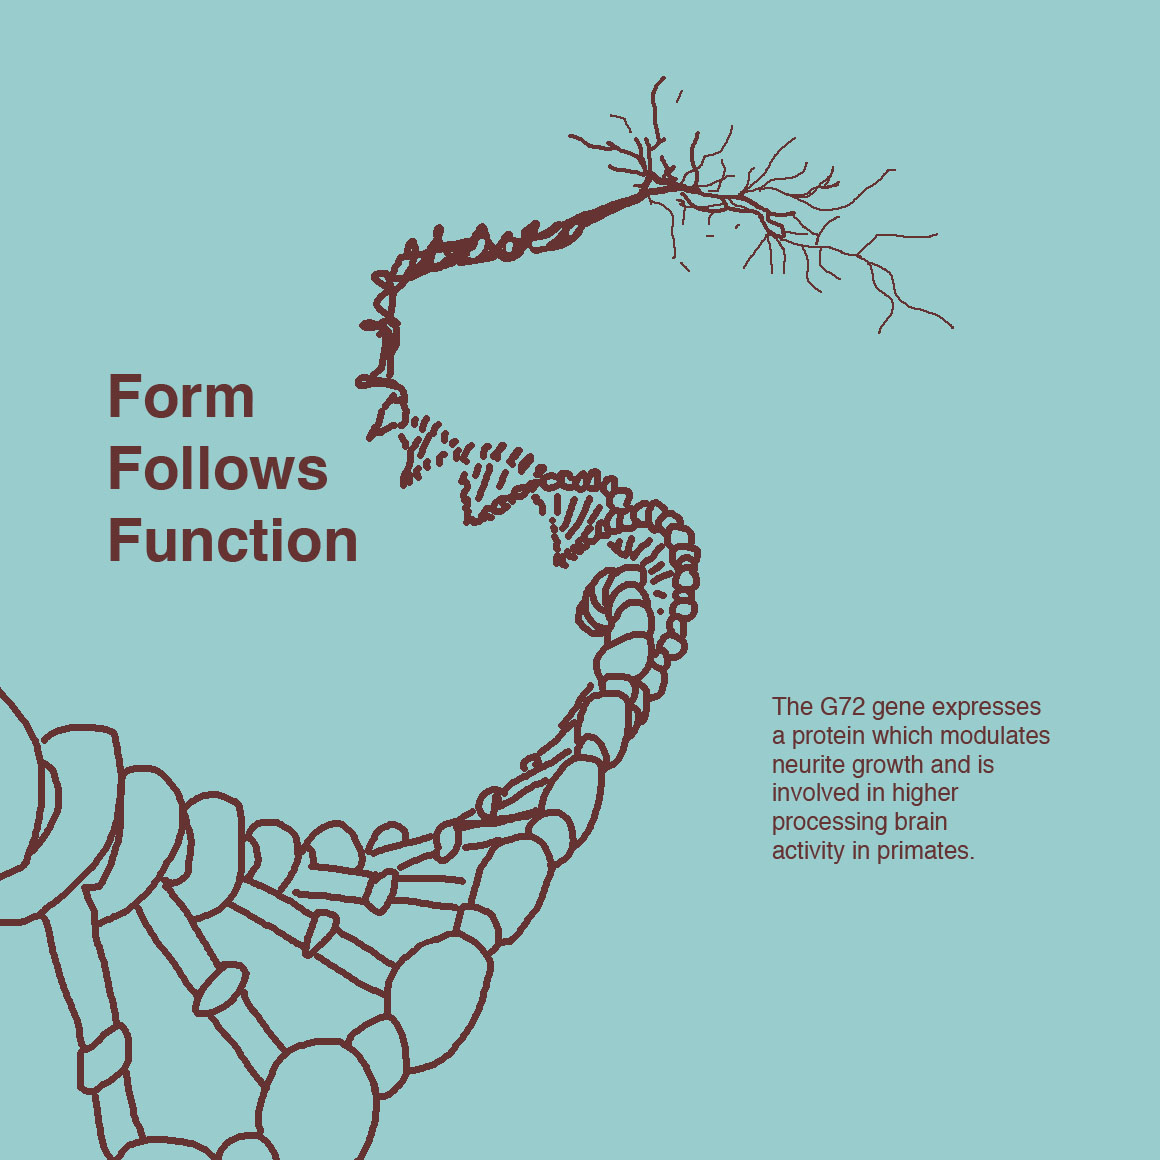 form follows function The form follows function axiom is simply too broad and high minded to apply in any meaningful way to the relationship between a website's design and its content - that is to say content as distinct from functionality.